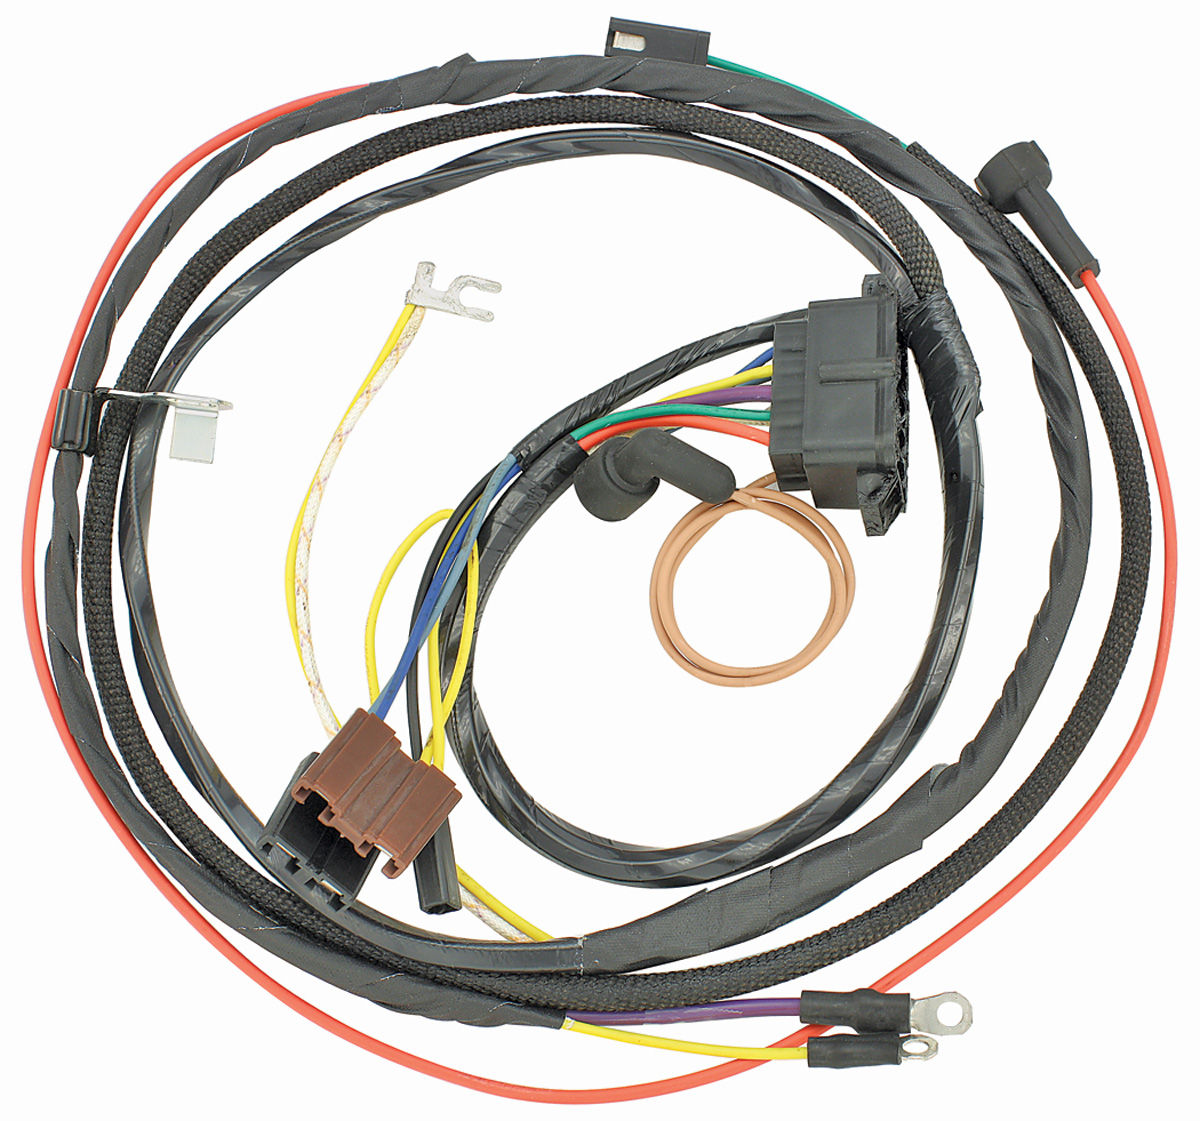 1964 Chevelle Wiring Harness | Wiring Diagram on 1972 chevelle starter wiring diagram, 69 camaro starter wiring diagram, 68 chevelle starter wiring diagram,